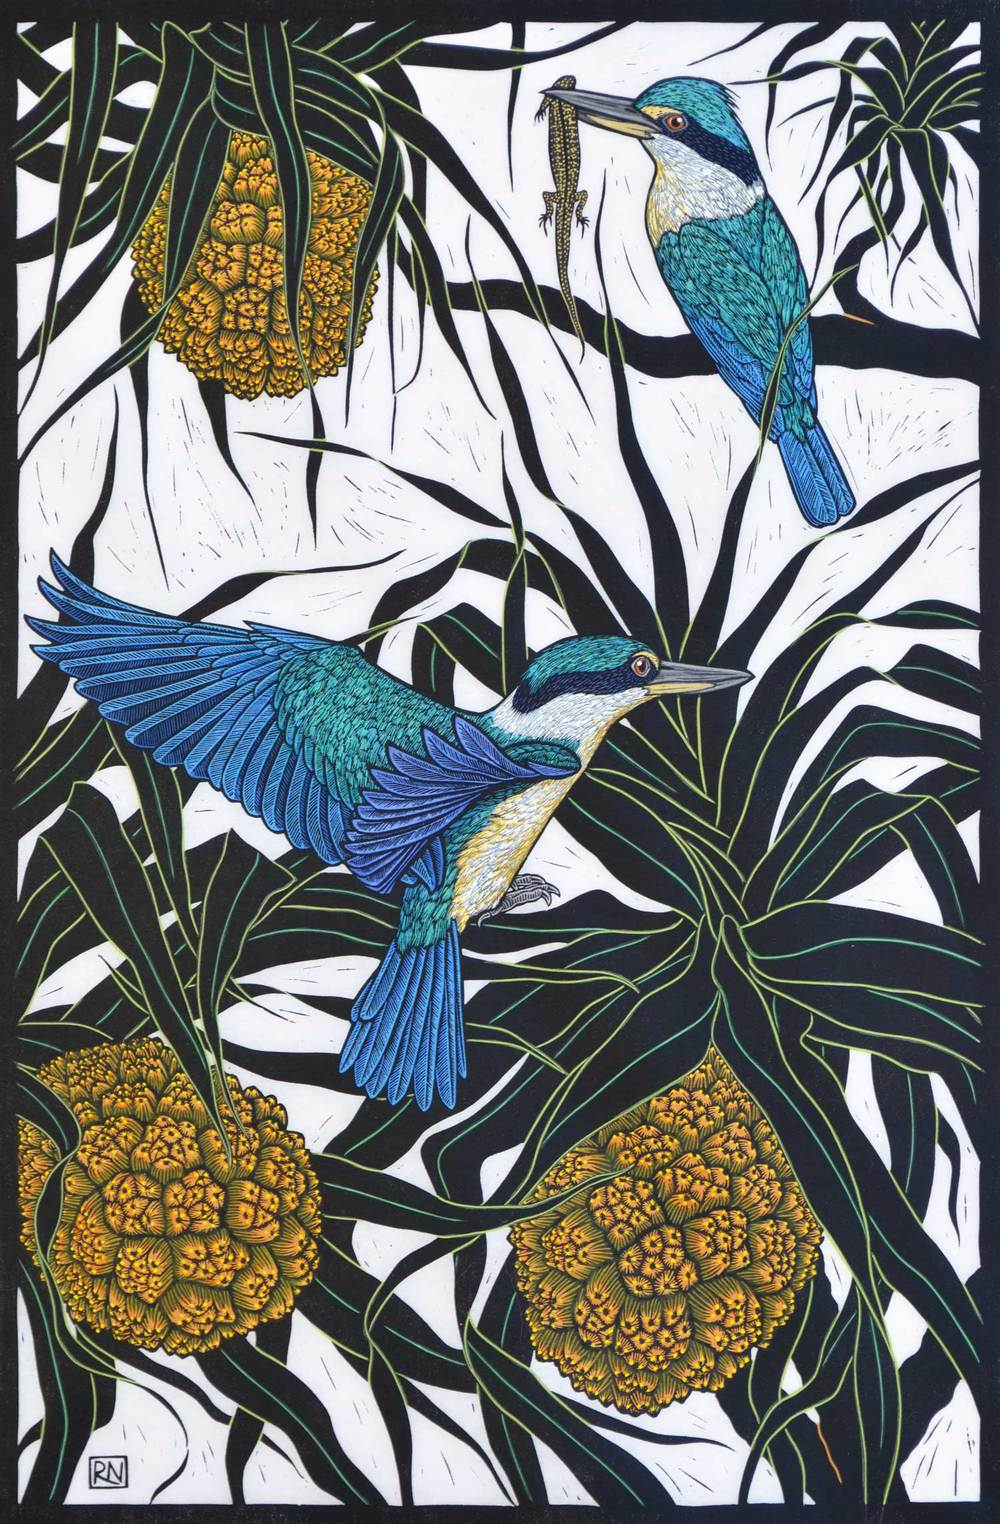 SACRED KINGFISHER 75 X 50 CM    EDITION OF 50 HAND COLOURED LINOCUT ON HANDMADE JAPANESE PAPER $1,400